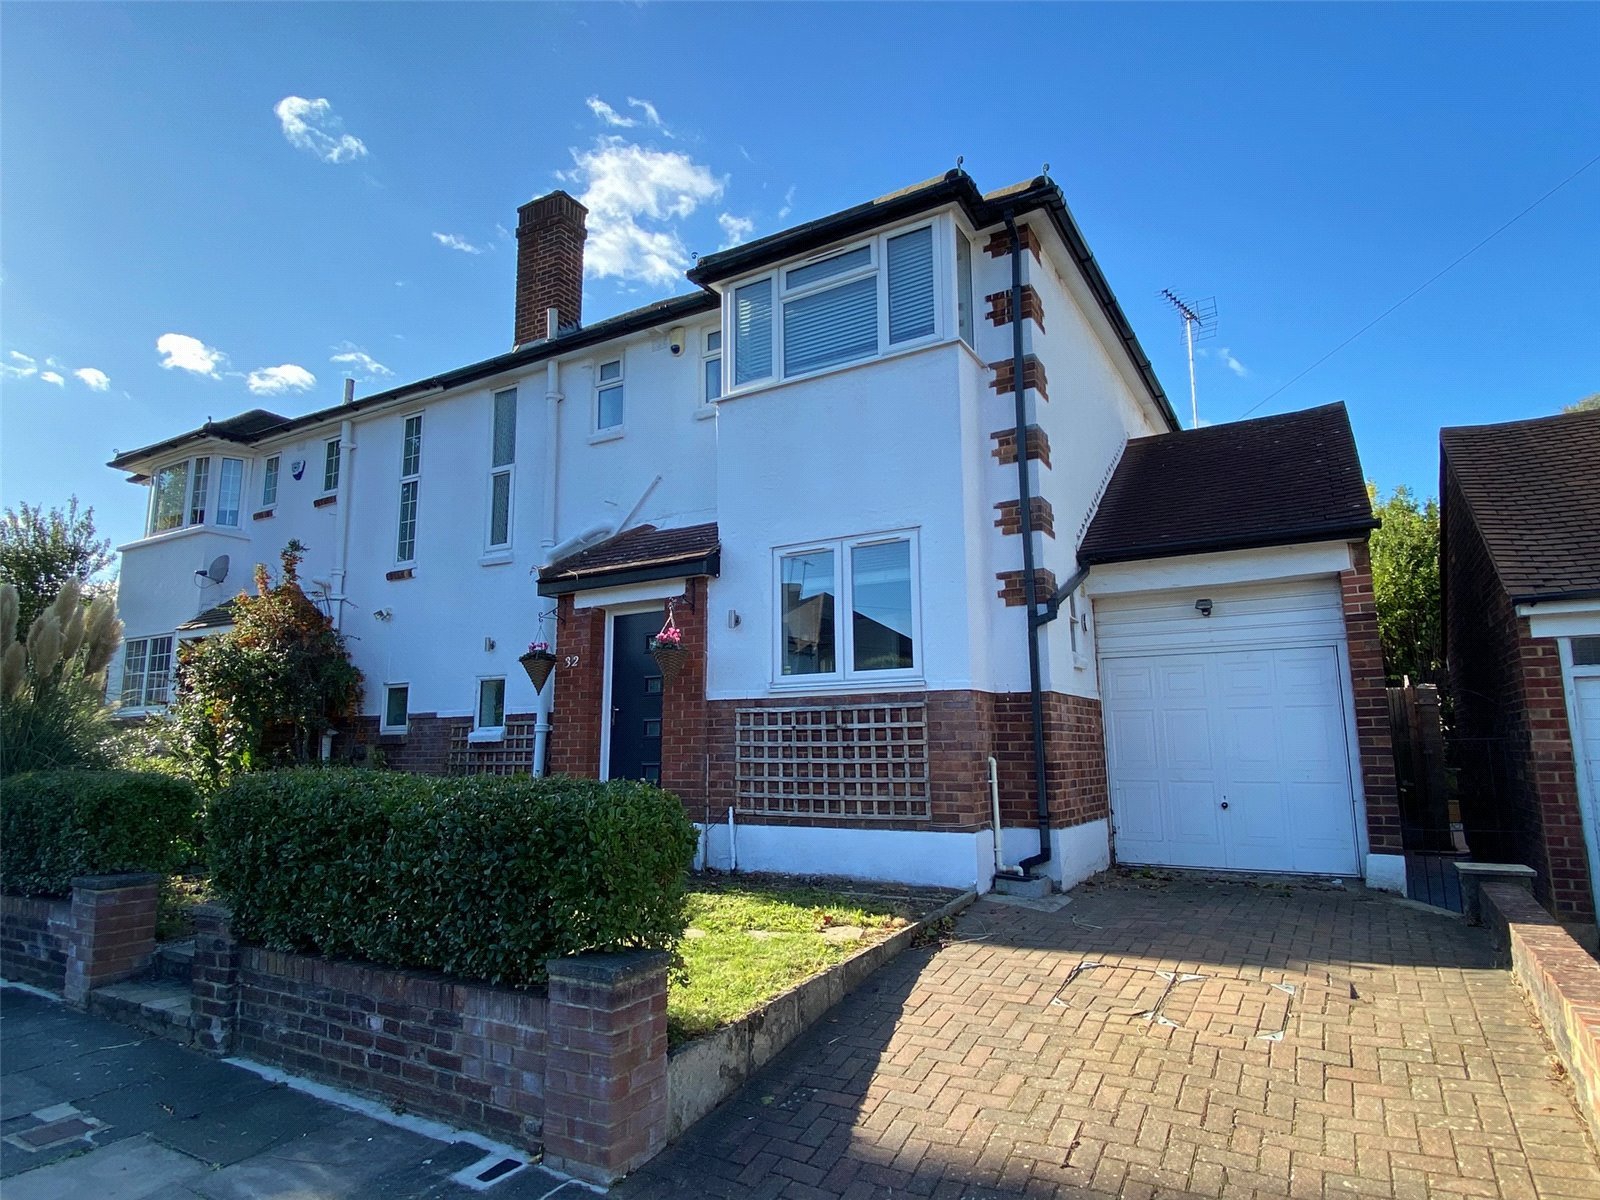 3 bed house for sale in High Barnet, EN5 1AL, EN5